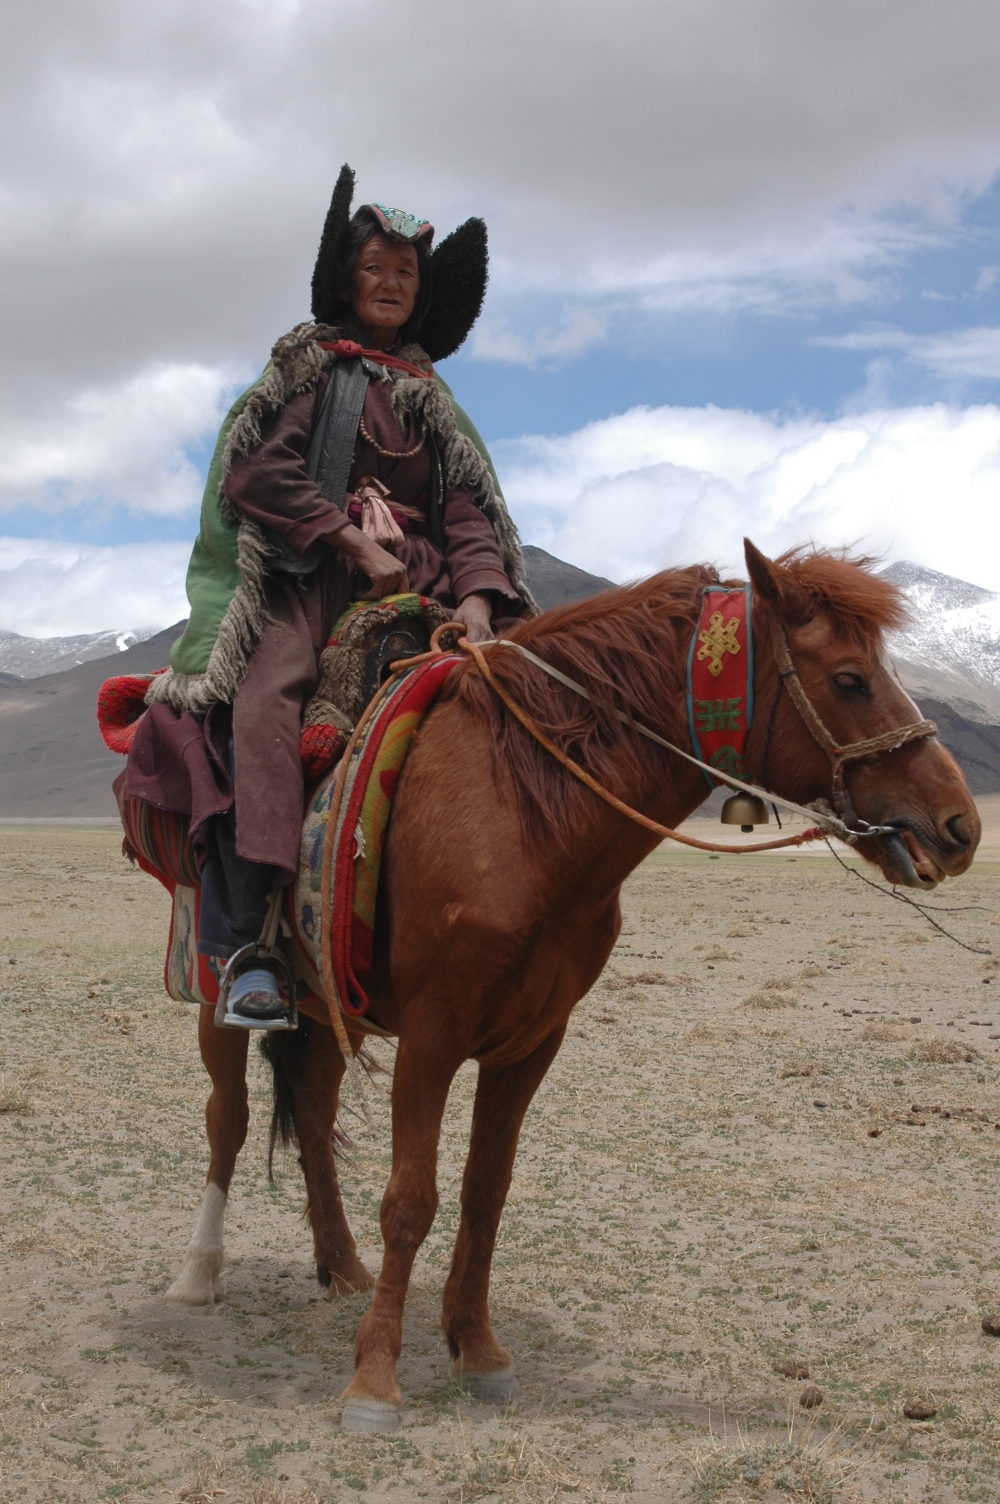 Tashi Zangmo wears her perag as she rides her horse to move from one campsite to the next, amongst the nomadic pastoralists of Changthang in eastern Ladakh.  (Photographer: Monisha Ahmed, 2006)